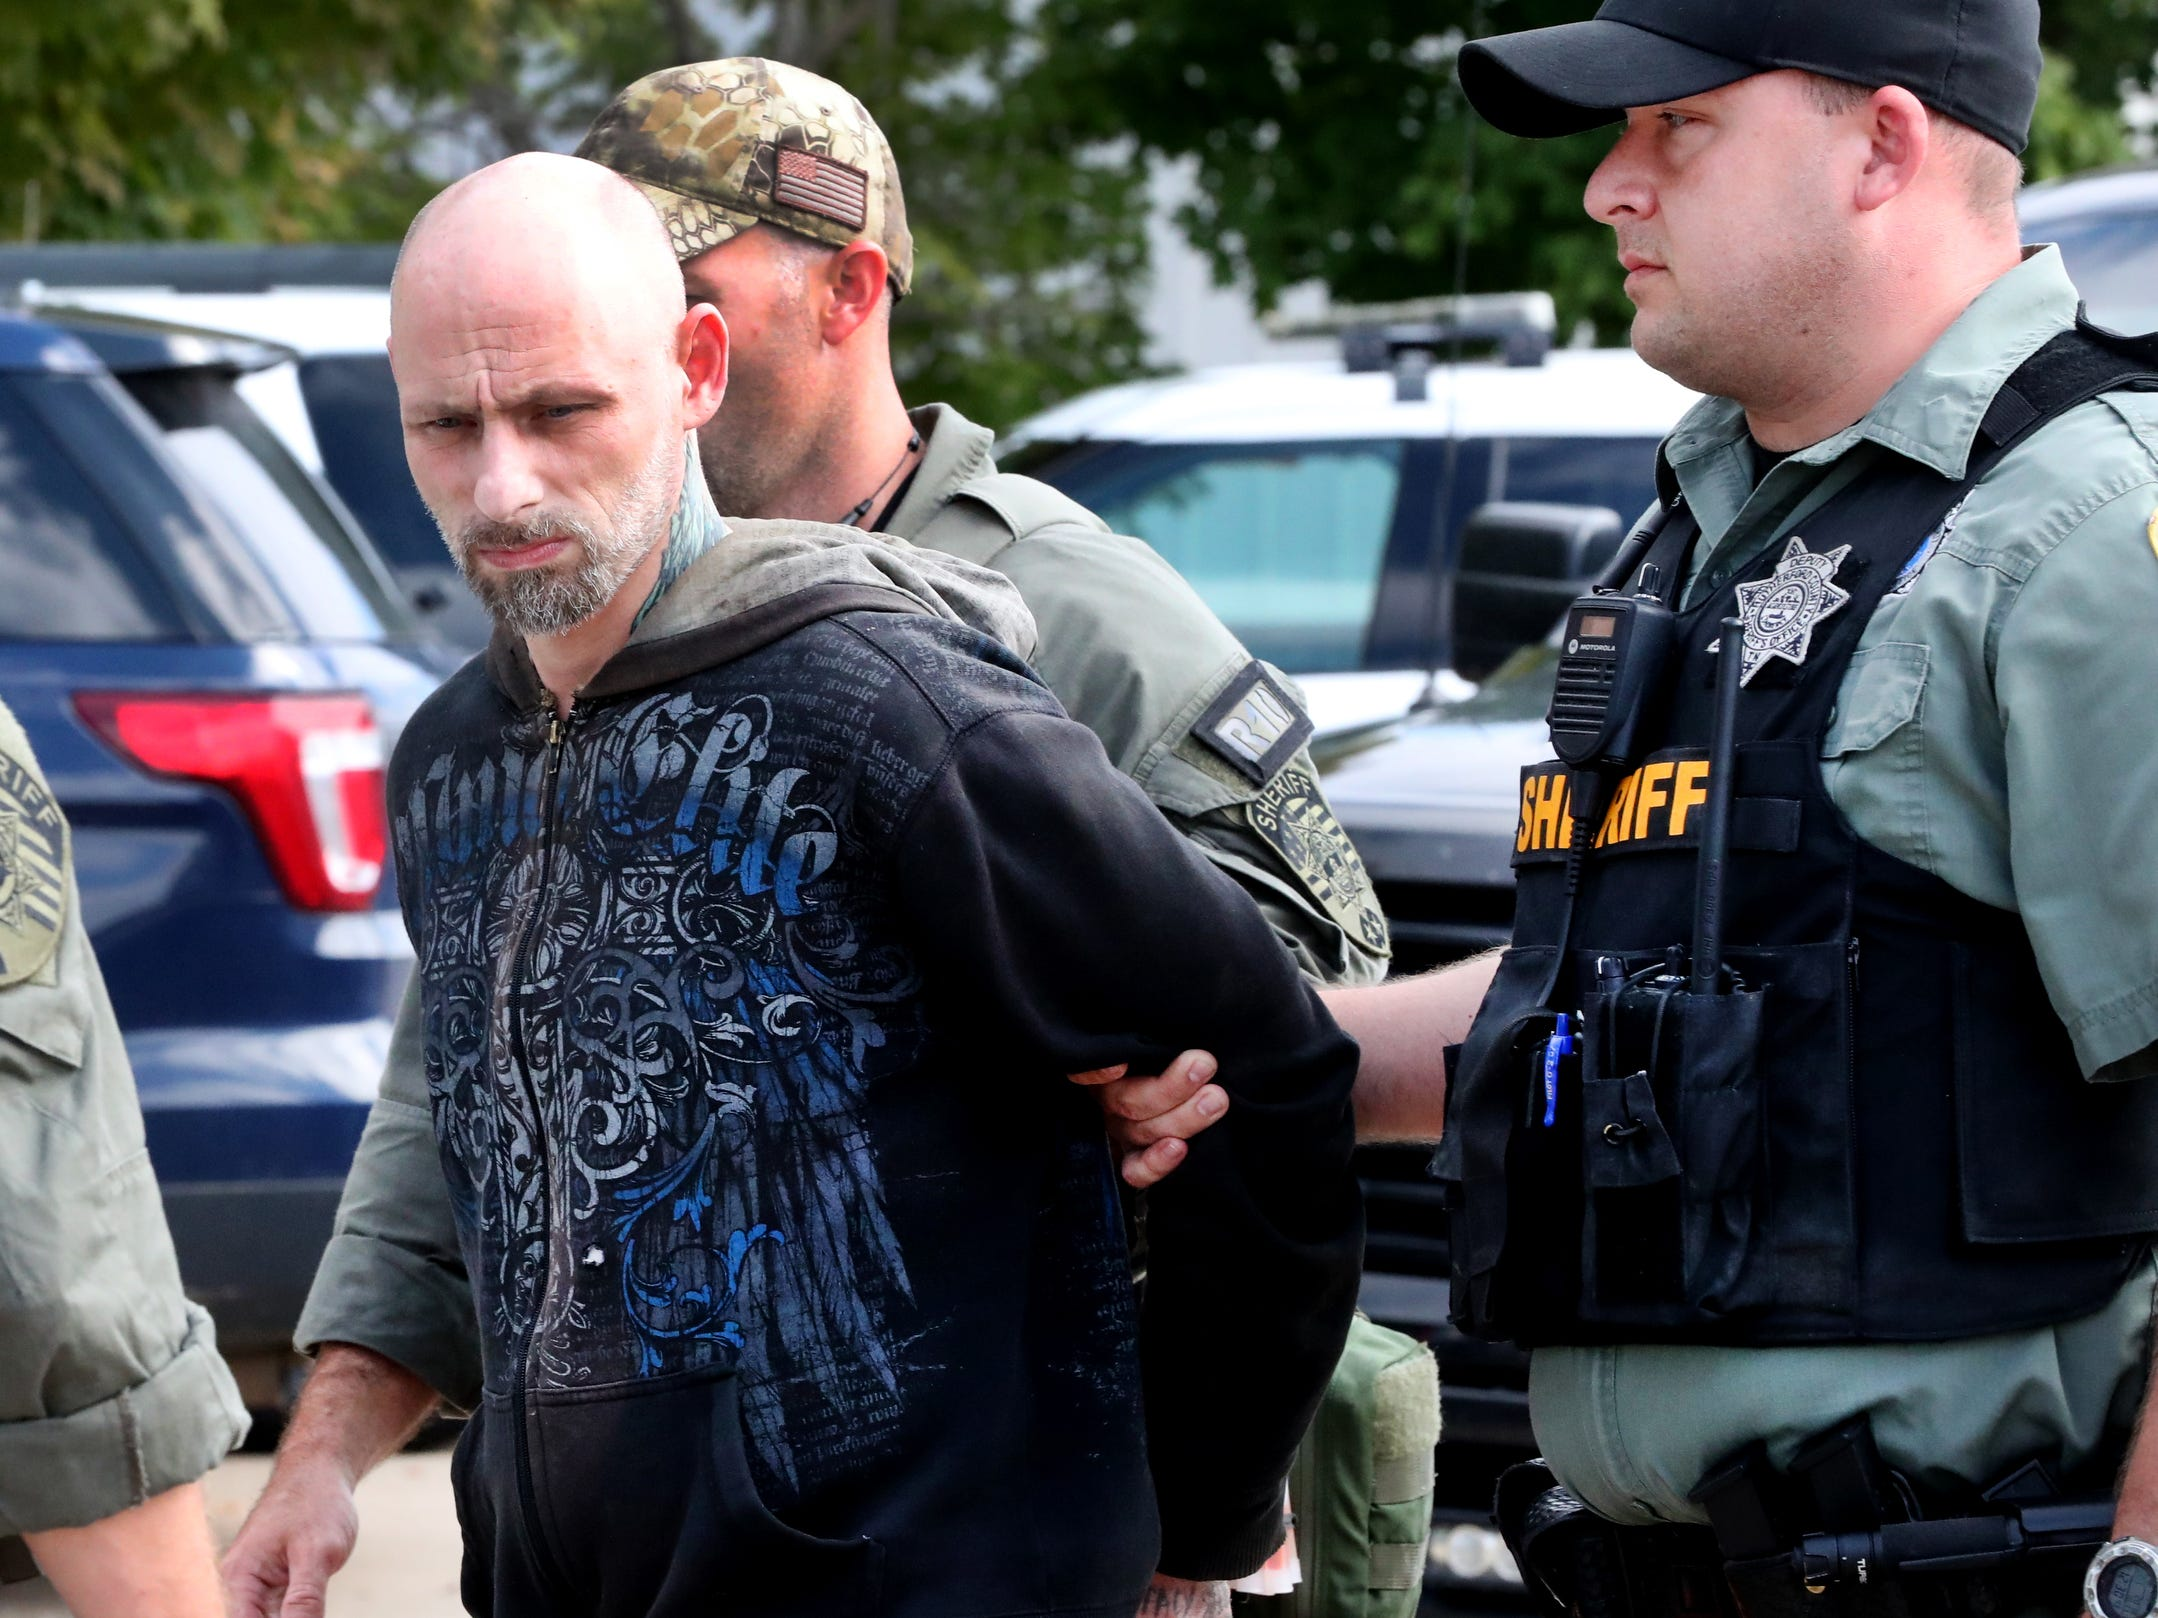 Dewayne Halfacre is escorted by Rutherford County Sheriff's Deputies after being captured Thursday, Oct. 11, 2018. Halfacre and cellmate Jonathan Baxter assaulted a deputy at the county jail before escaping early Wednesday morning, investigators said.